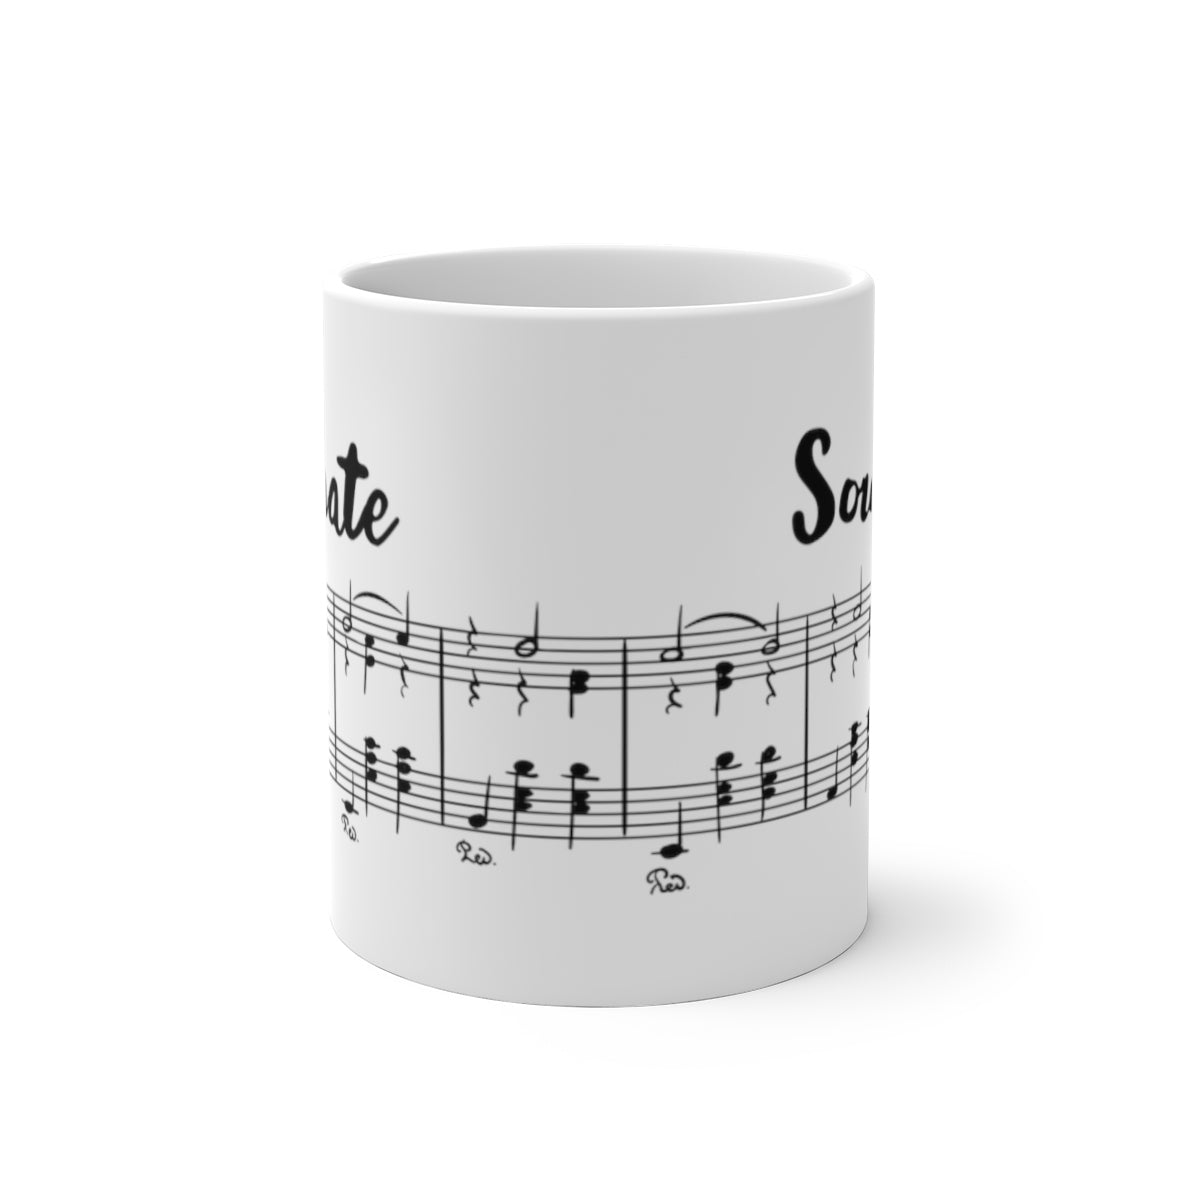 Personalized Color Changing Mug, Sonate, Sound - skyrockettees